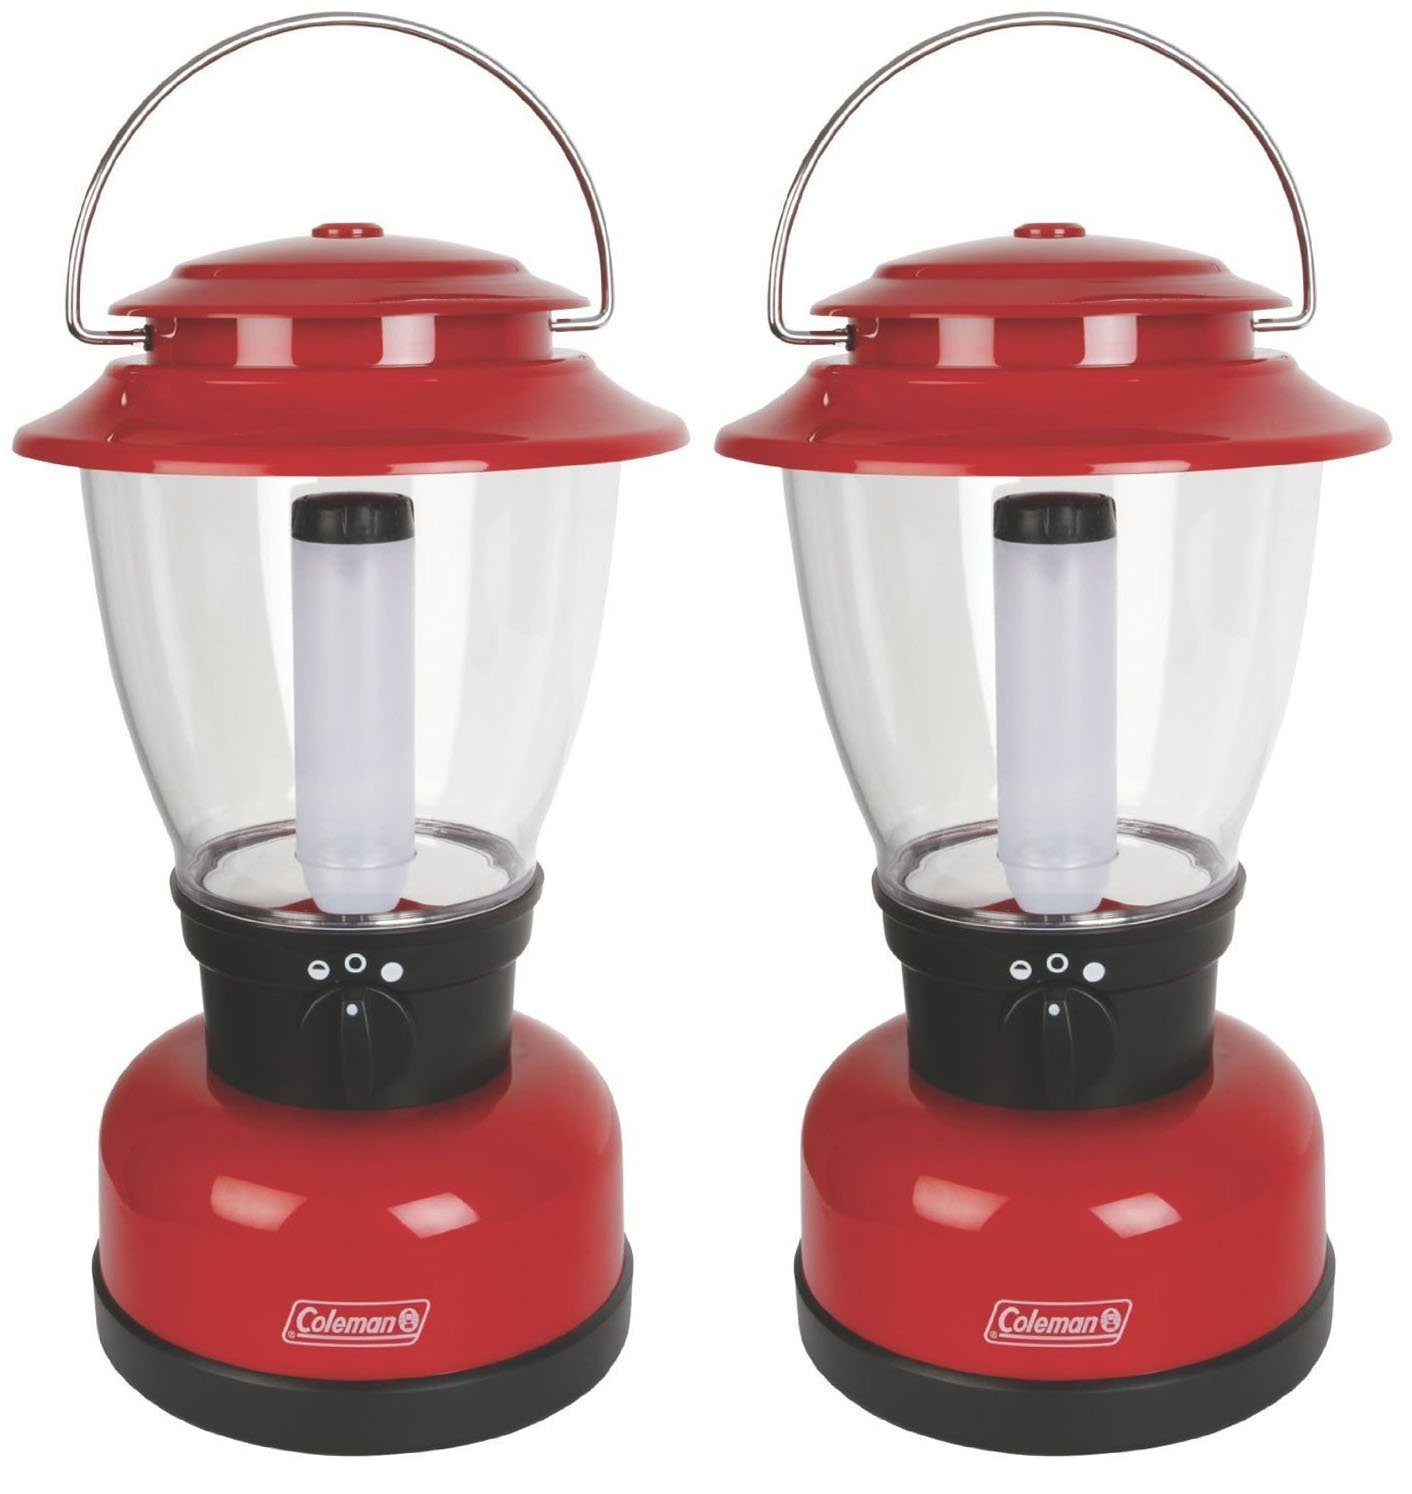 Set of 2 Coleman Classic XL lantern - 400 Lumens - Rechargeable - 125 Hour Runtime